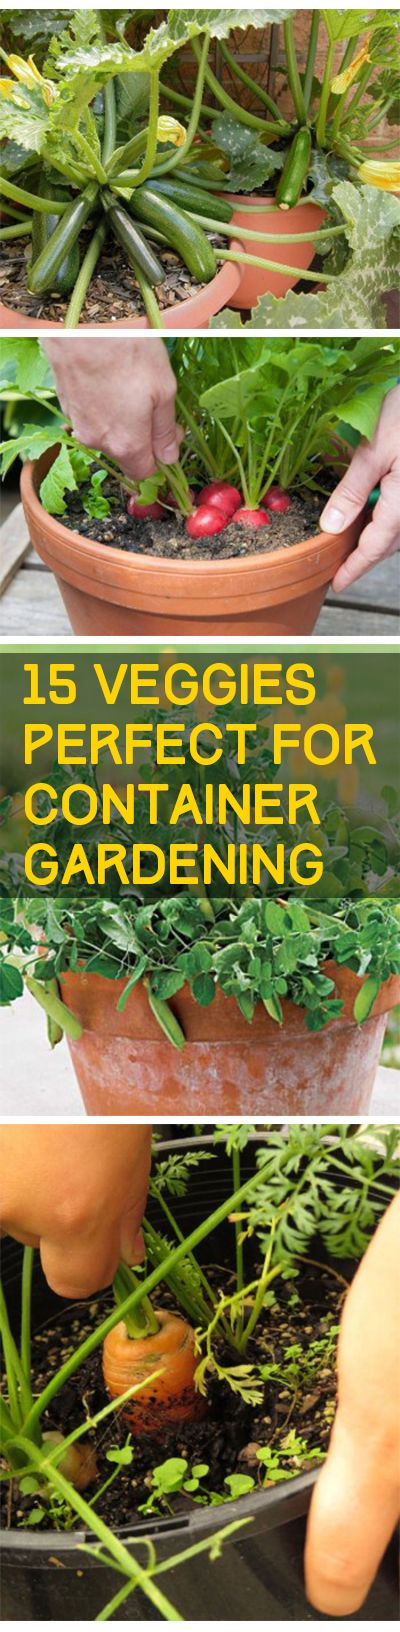 15 veggies perfect for container gardening 15 Veggies Perfect for Container Gardening